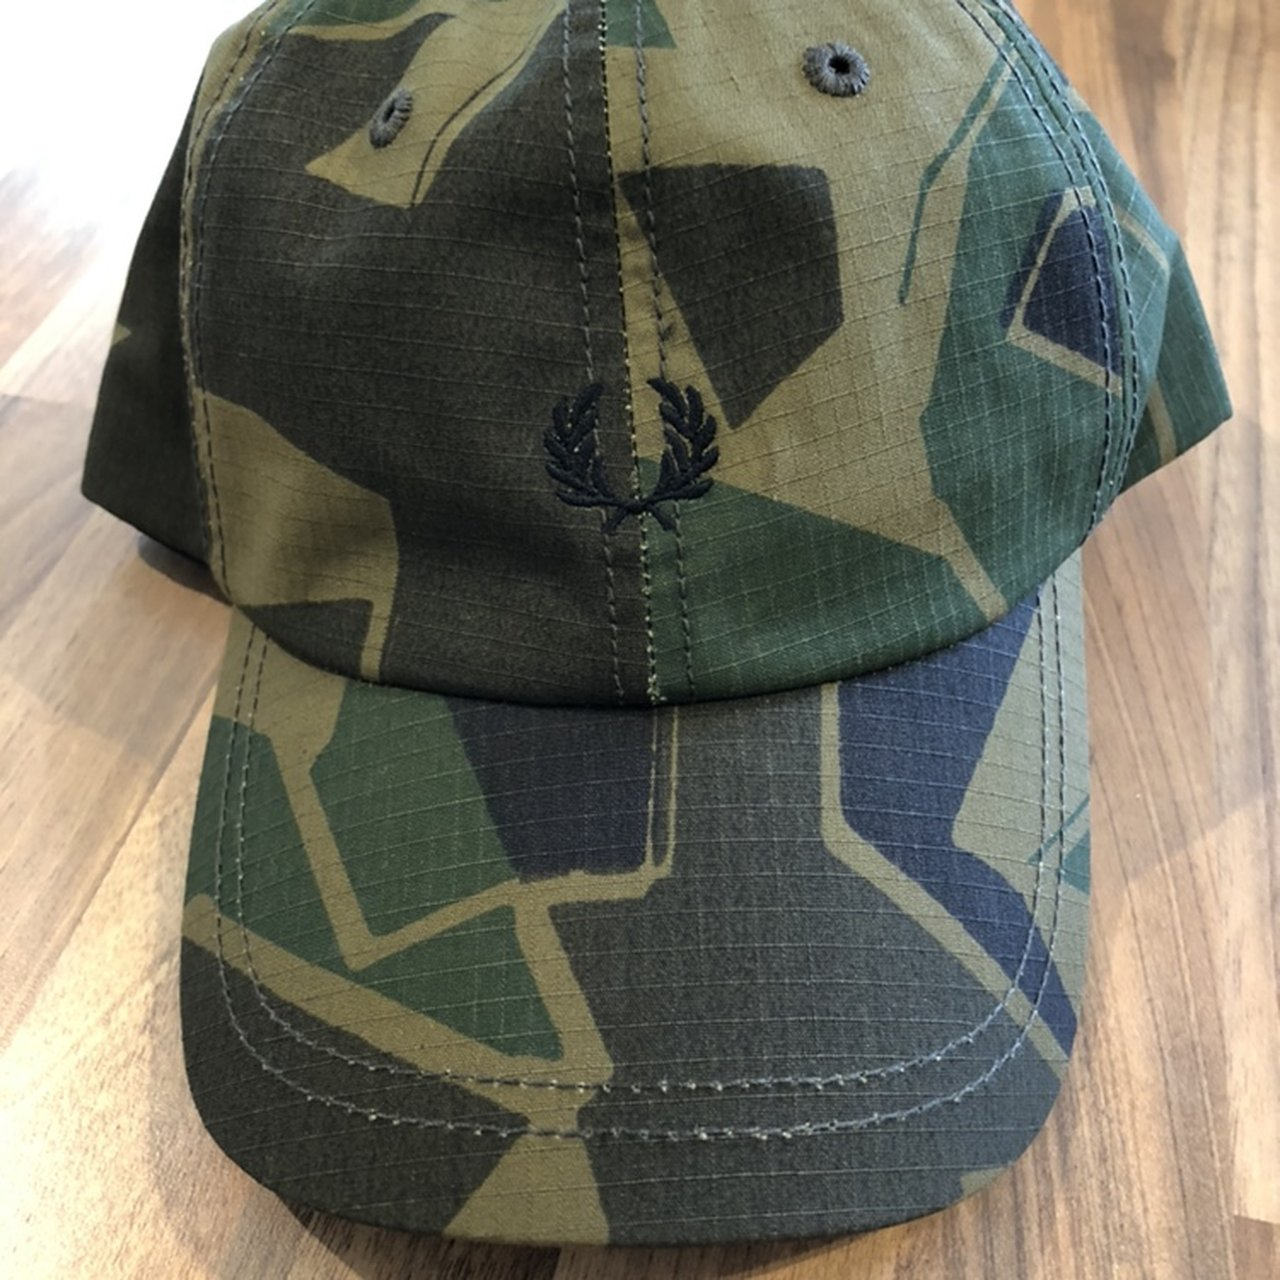 cbbb6645a Fred Perry x Arktis Limited Edition Cap. BNWT. RRP £35 Fred - Depop